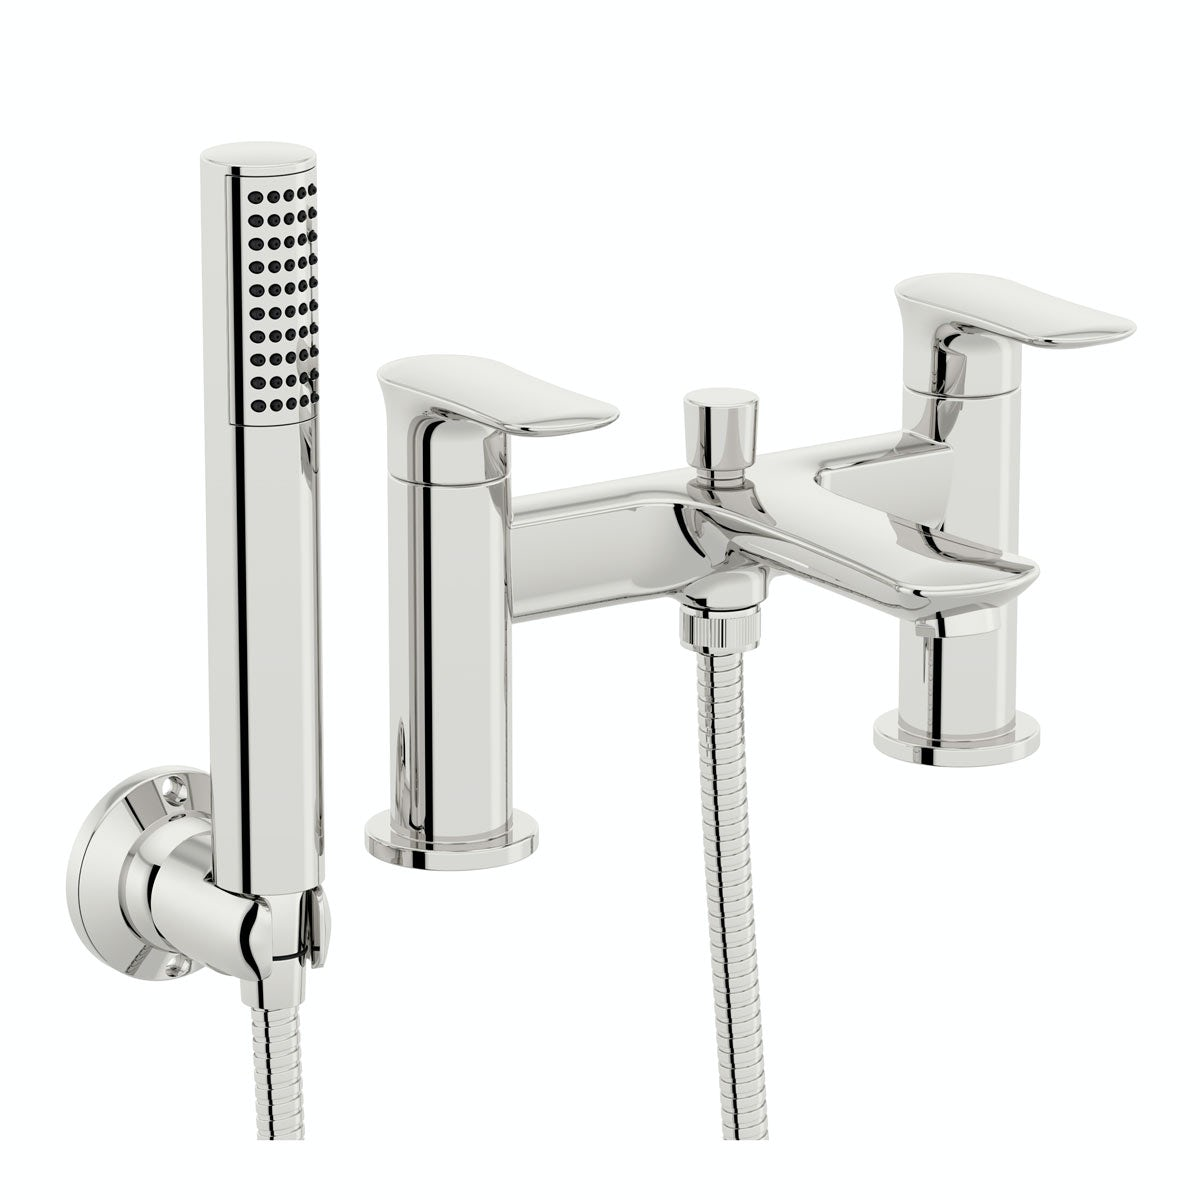 Orchard Cleanse bath shower mixer tap